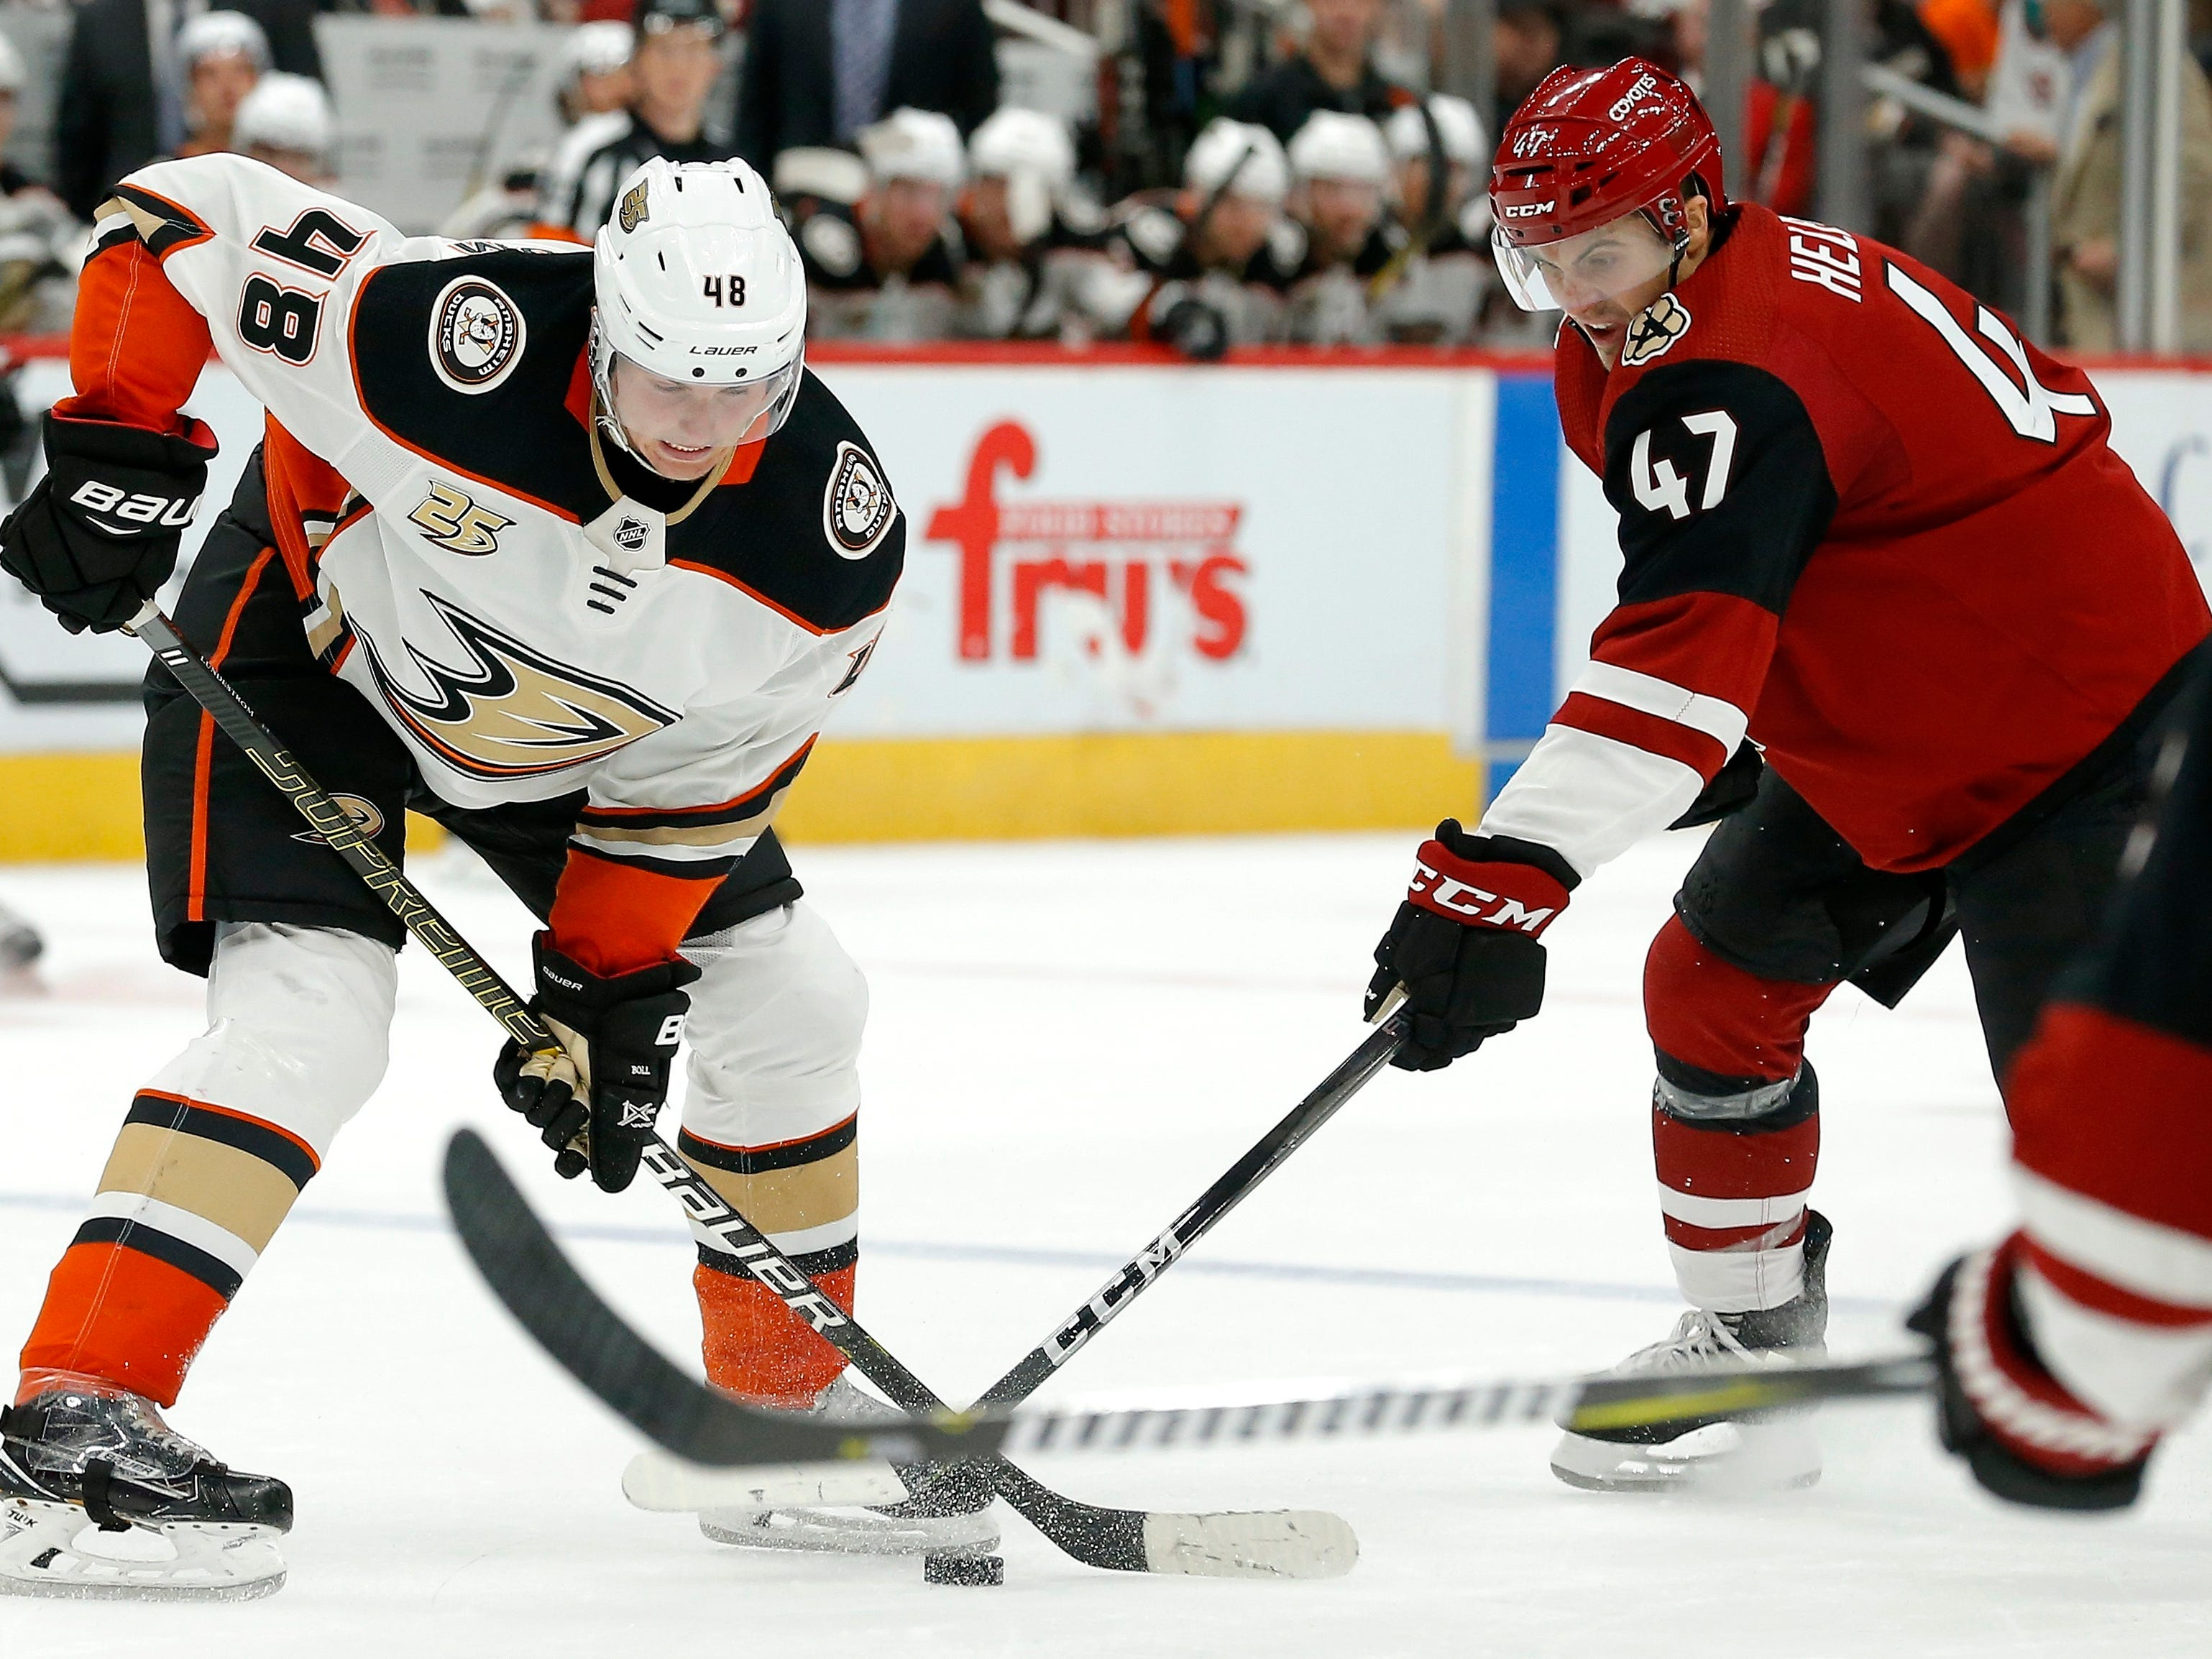 Anaheim Ducks center Isac Lundestrom (48) tries to get off a pass as Arizona Coyotes left wing Adam Helewka (47) arrives to poke the puck away during the third period of an NHL preseason hockey game Saturday, Sept. 22, 2018, in Glendale, Ariz. The Coyotes defeated the Ducks 6-1.